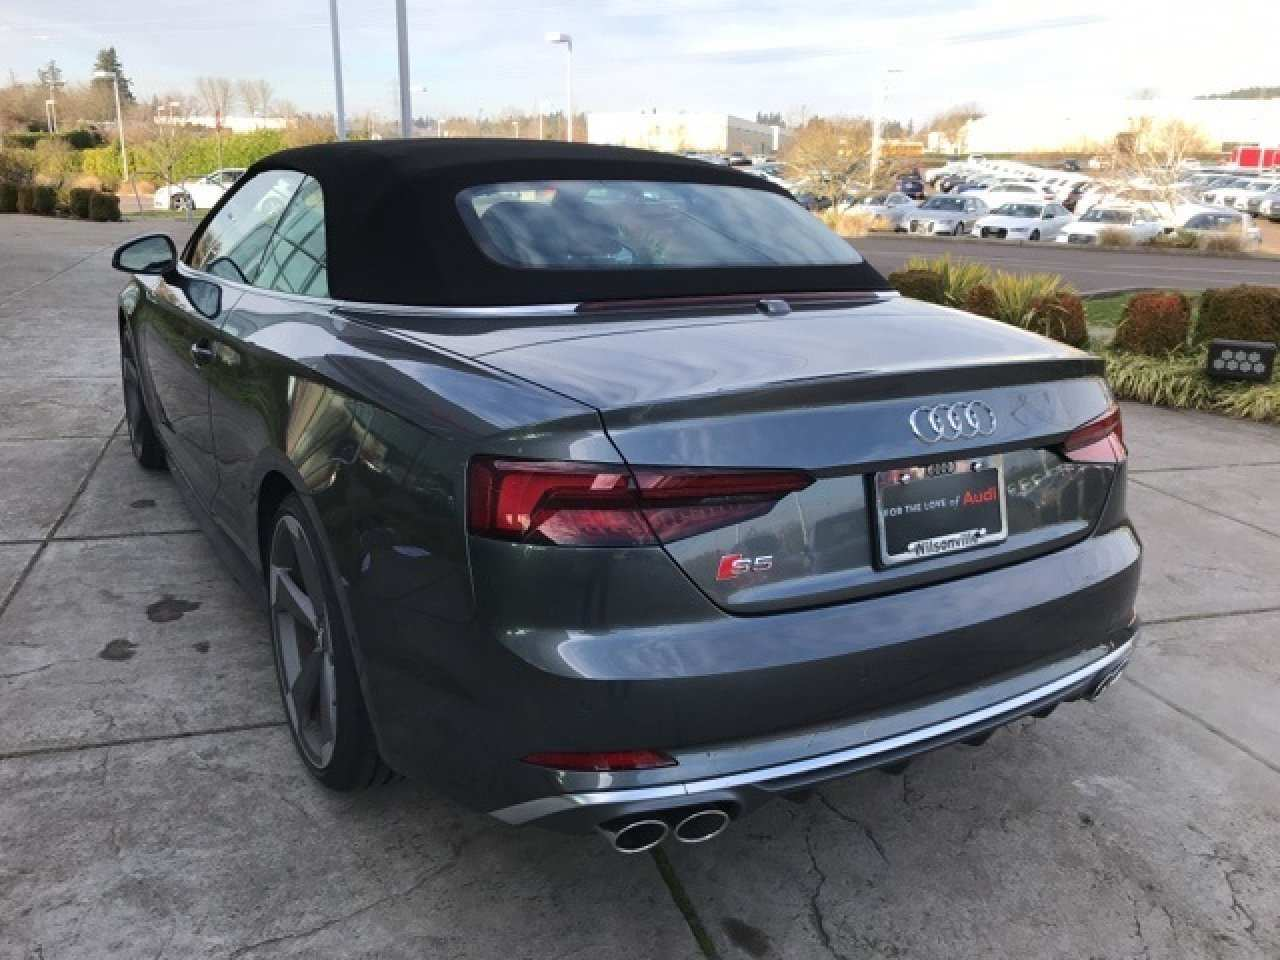 61 All New 2019 Audi S5 Cabriolet Engine